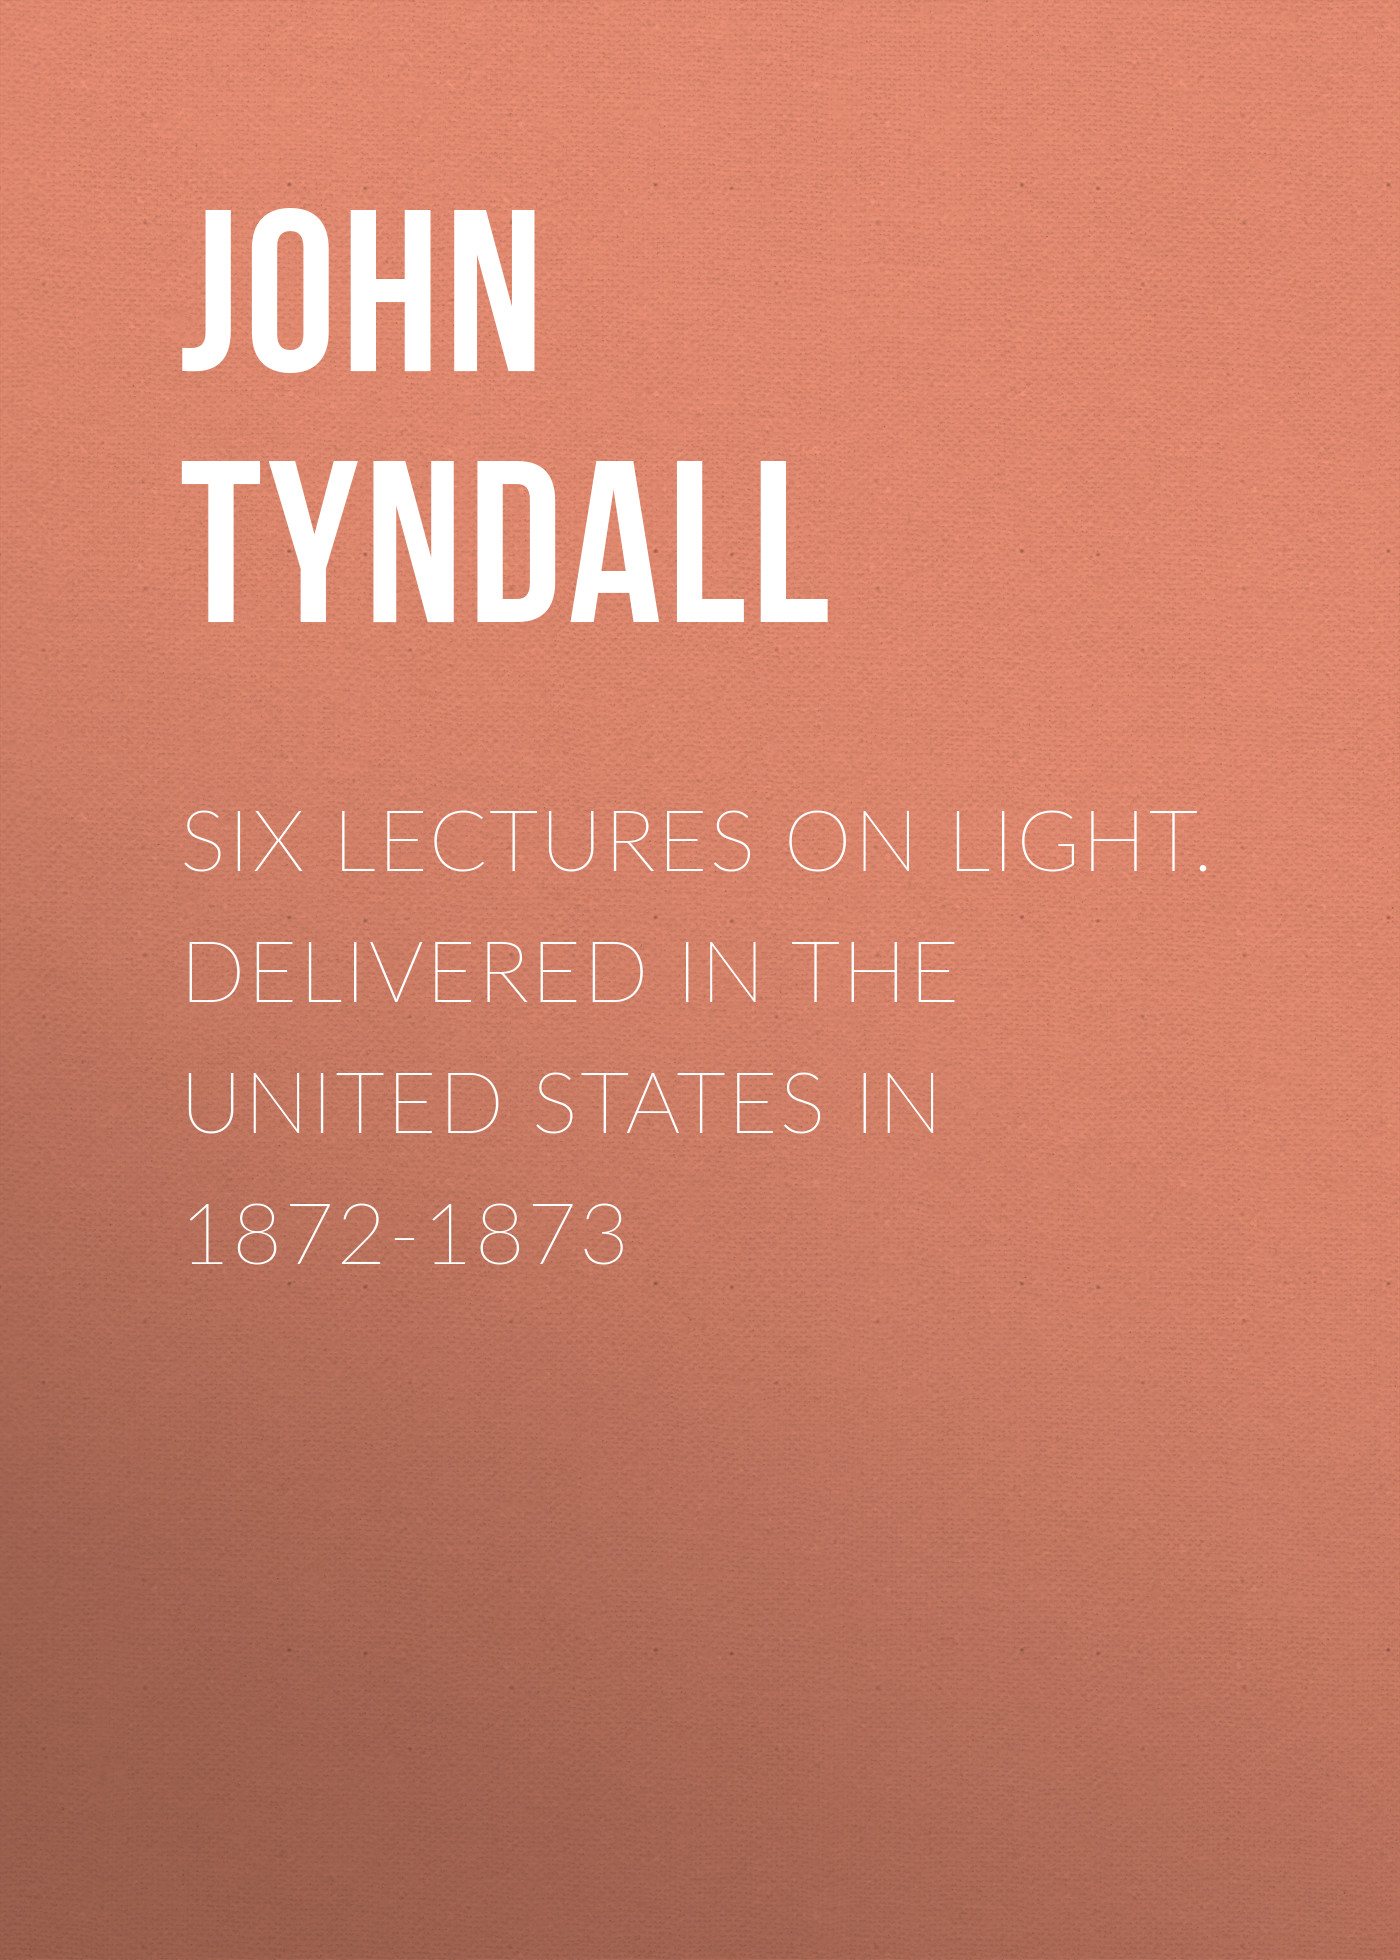 лучшая цена John Tyndall Six Lectures on Light. Delivered In The United States In 1872-1873